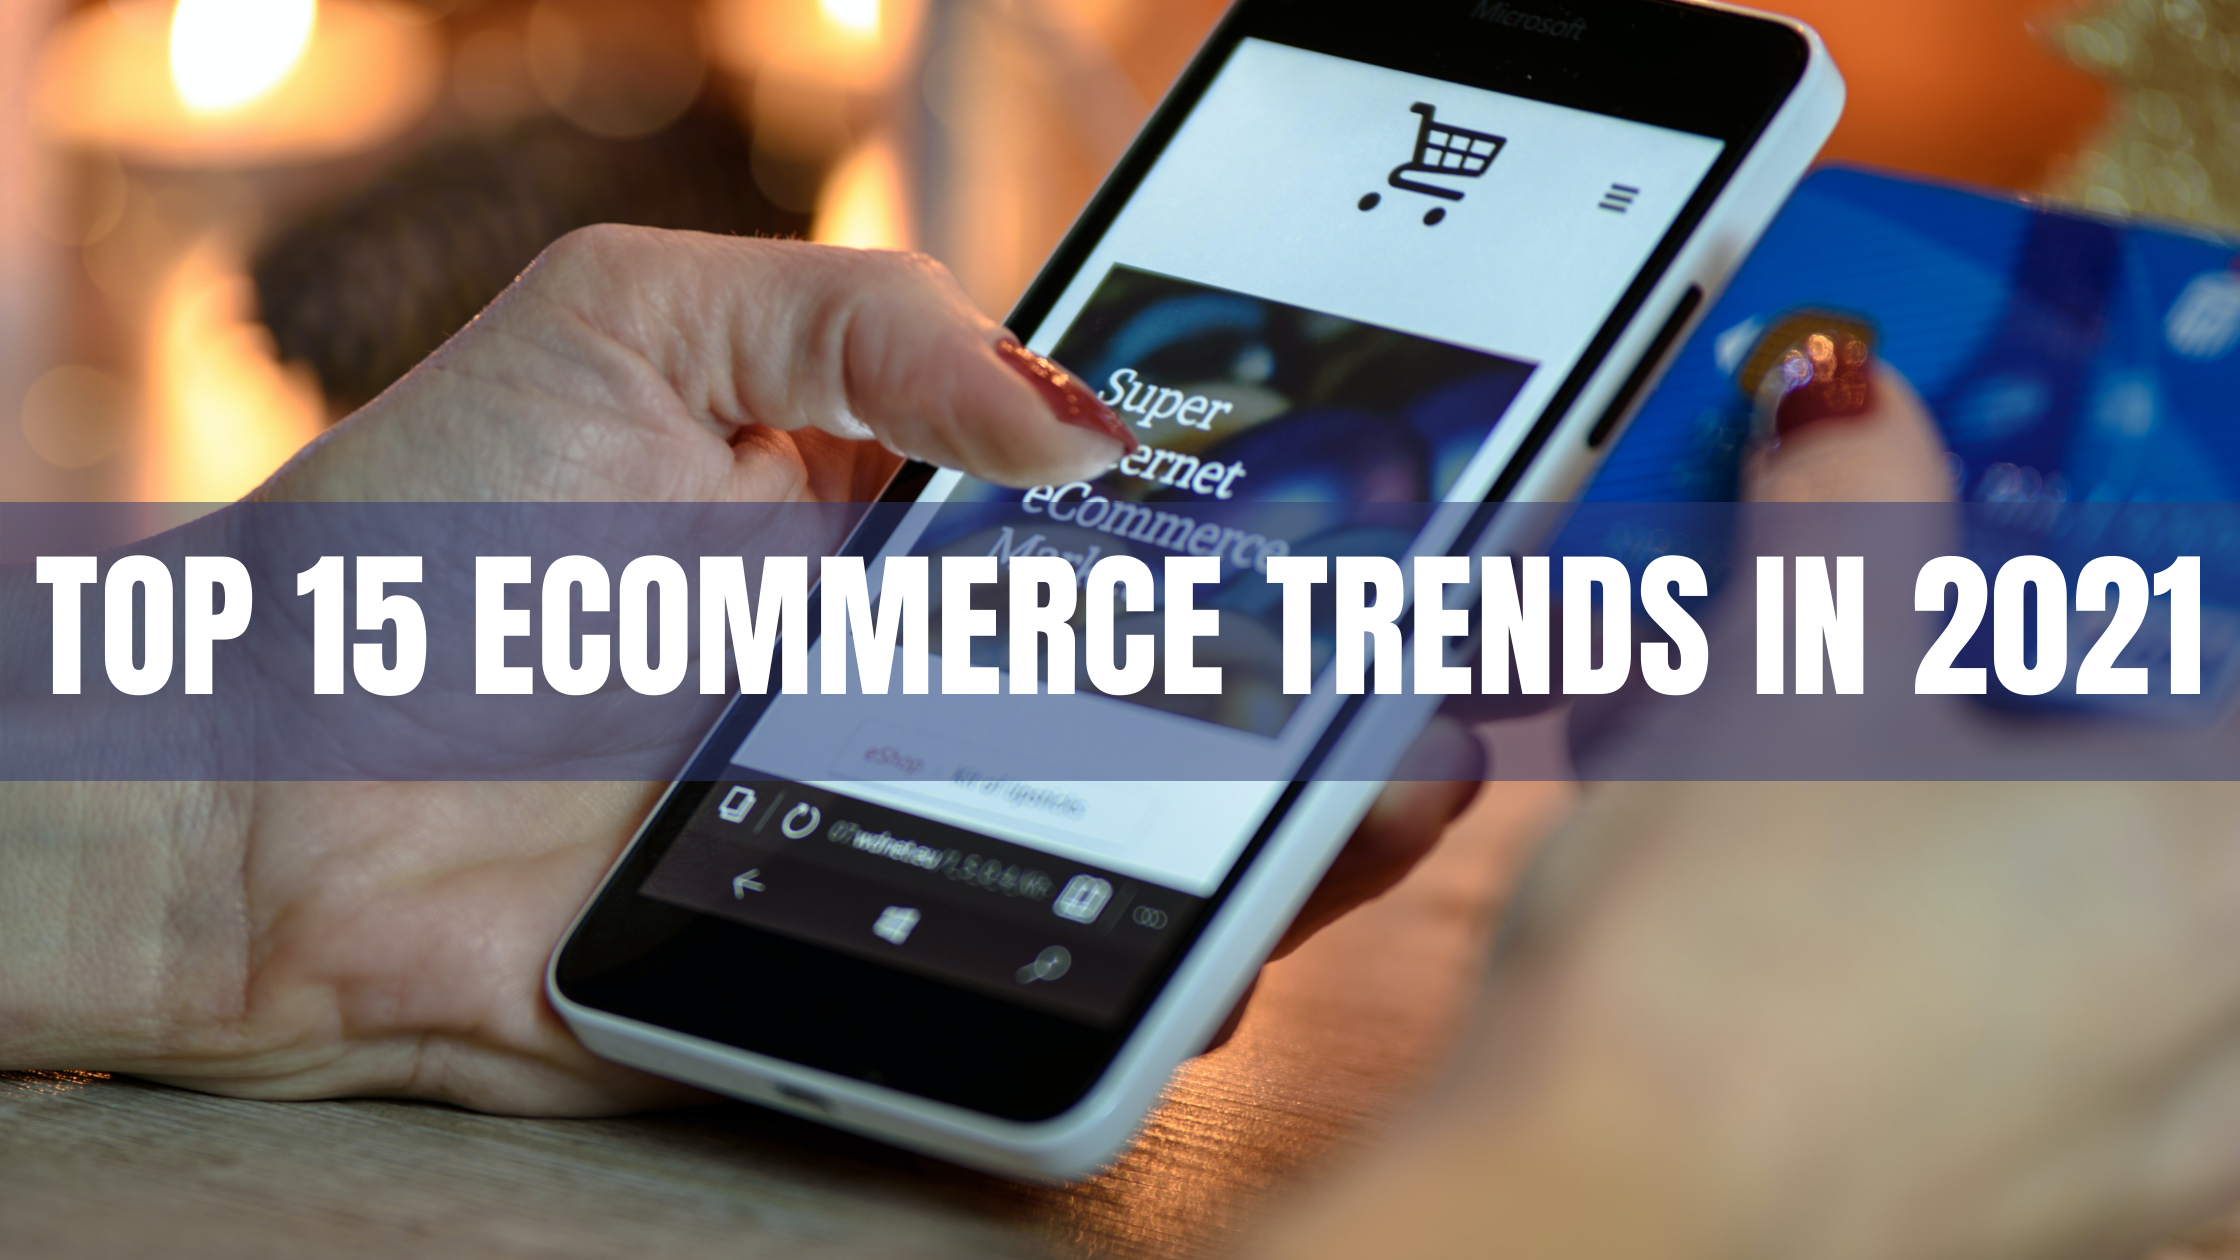 Top 15 e-commerce trends in 2021